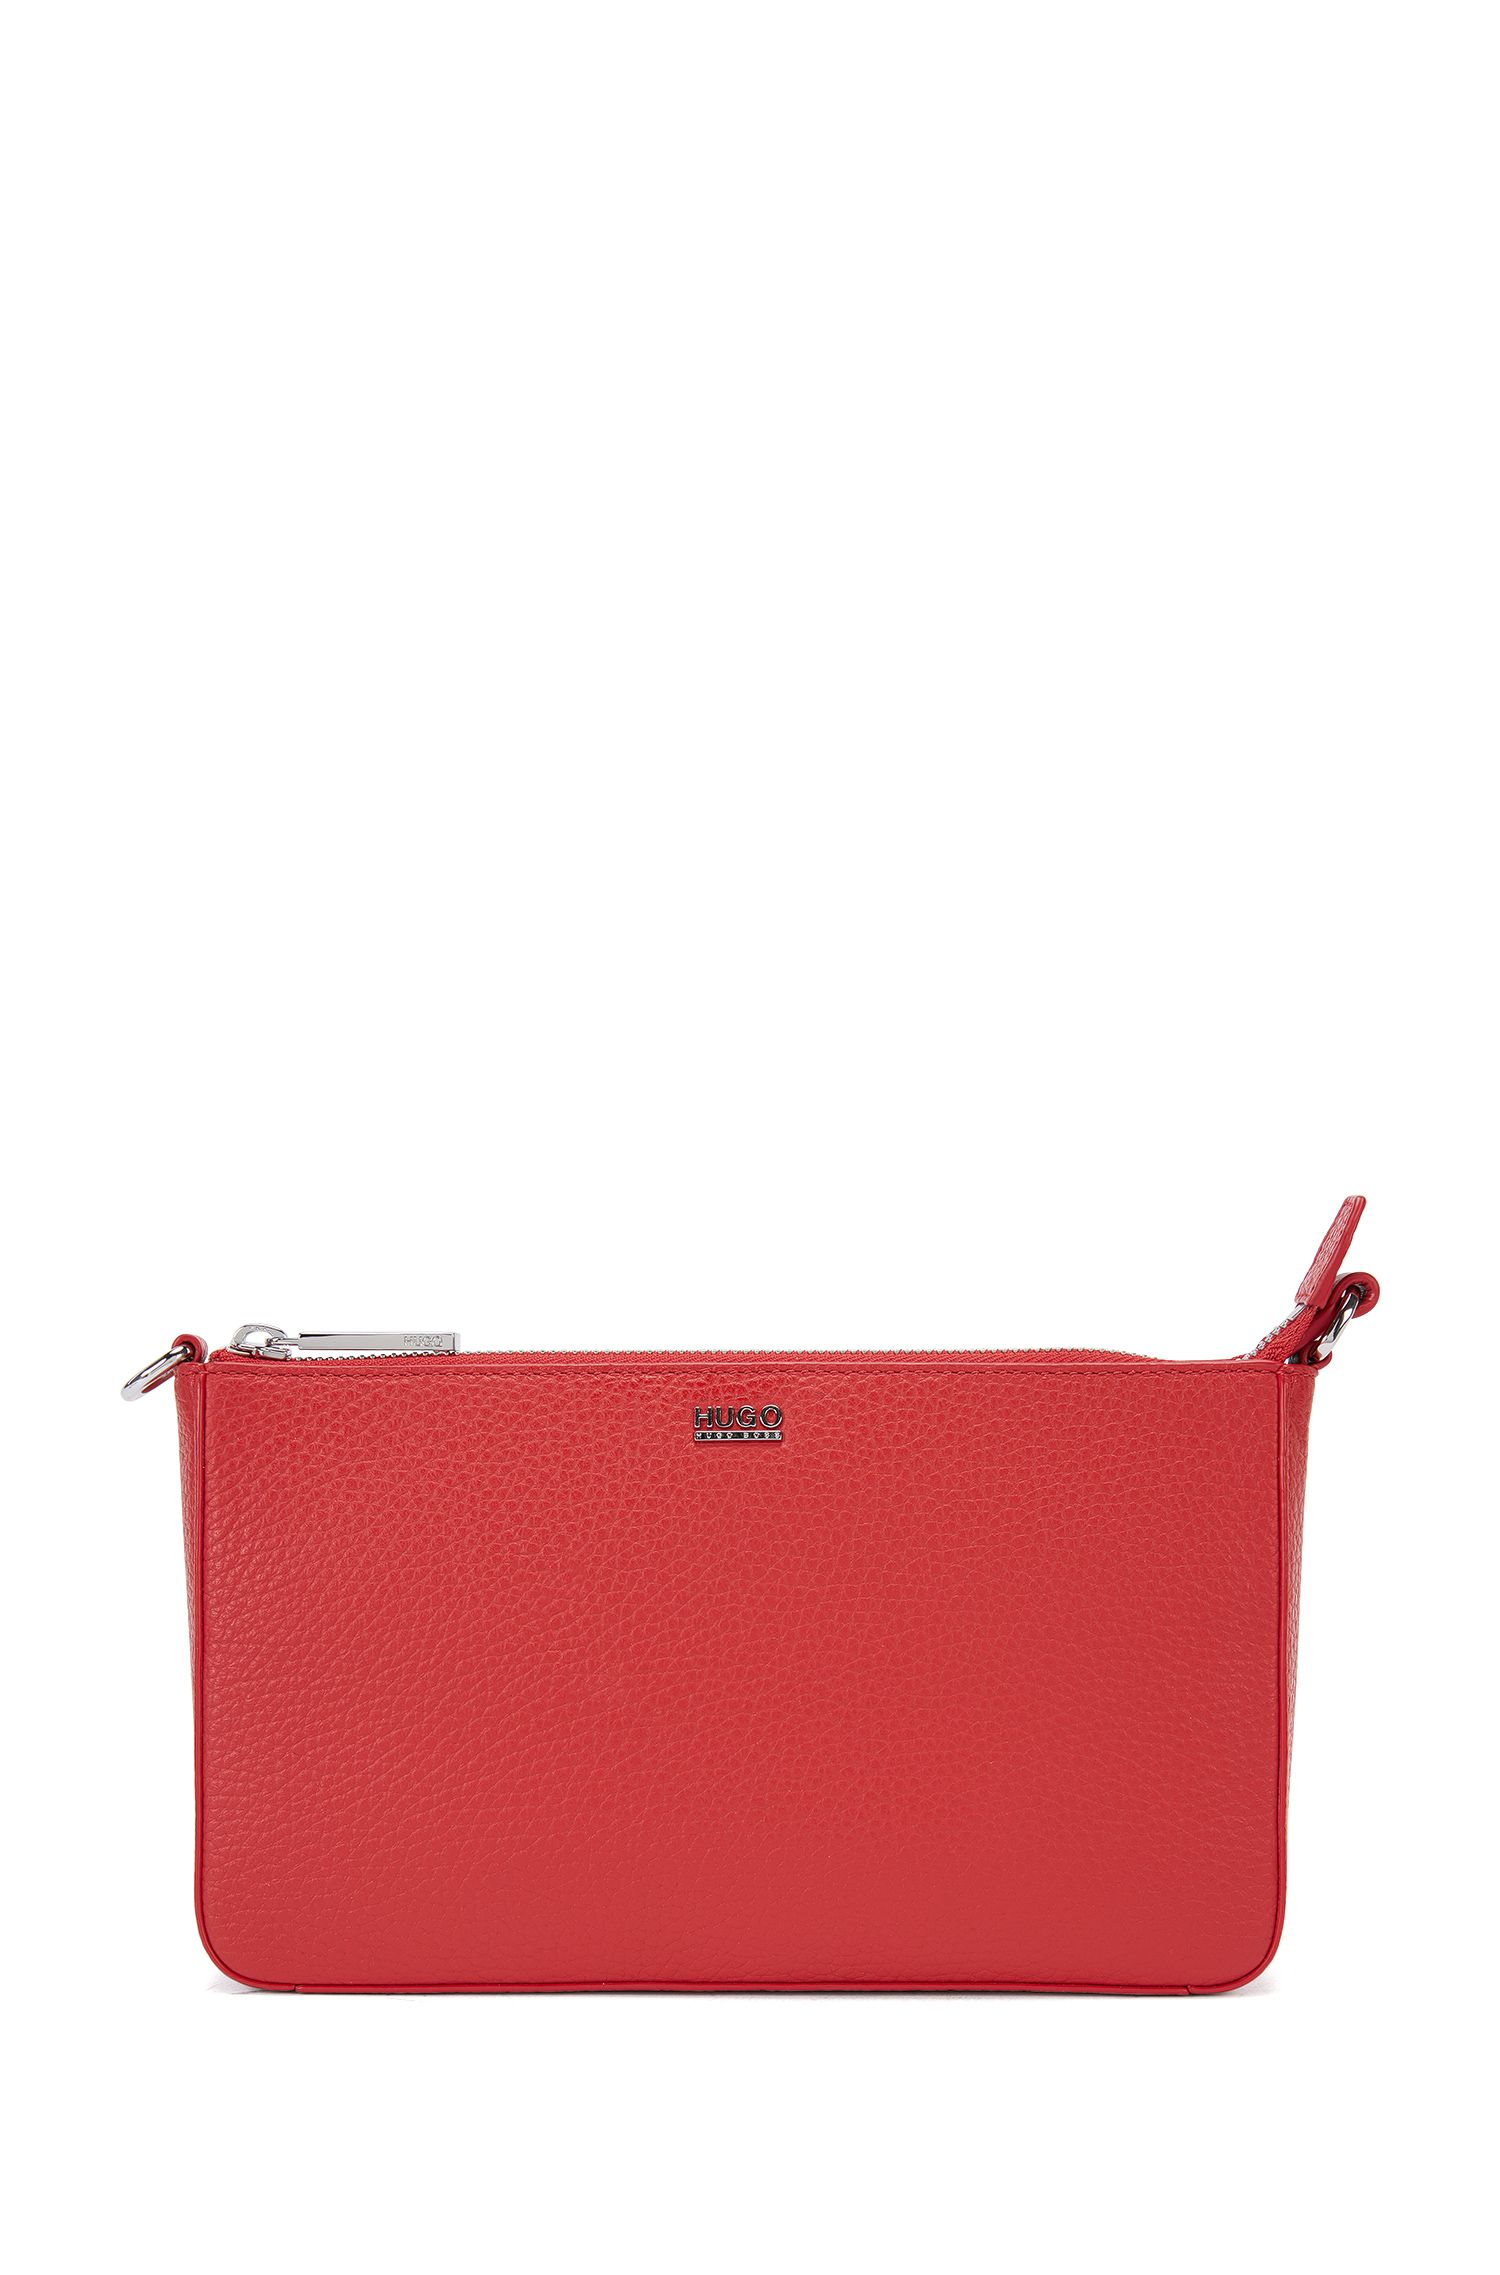 Zip-closure pouch in rich Italian leather